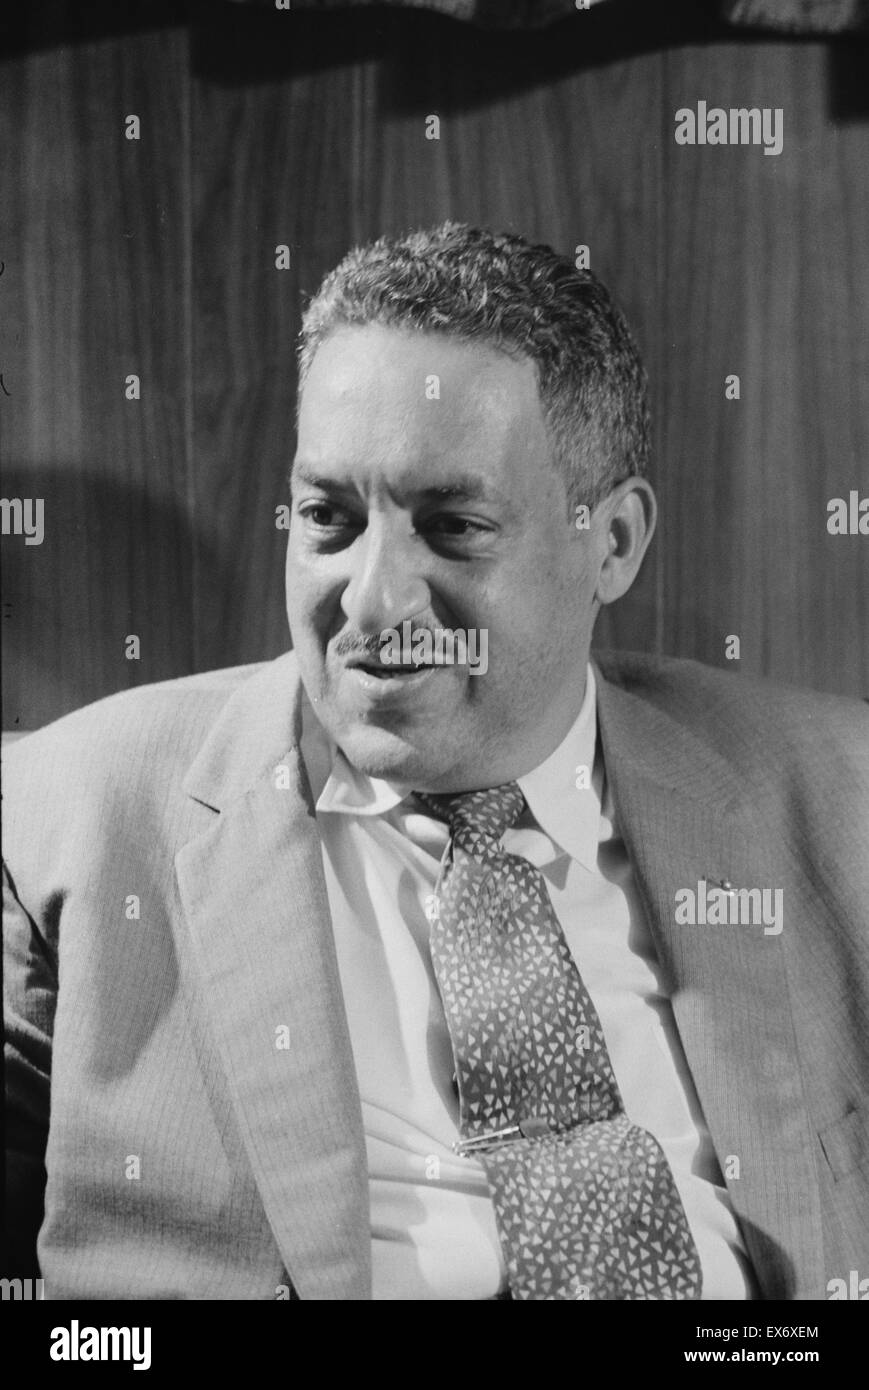 Thurgood Marshall (1908-1993) Associate Justice of the United Nations Supreme Court, serving from October 1967 until - Stock Image